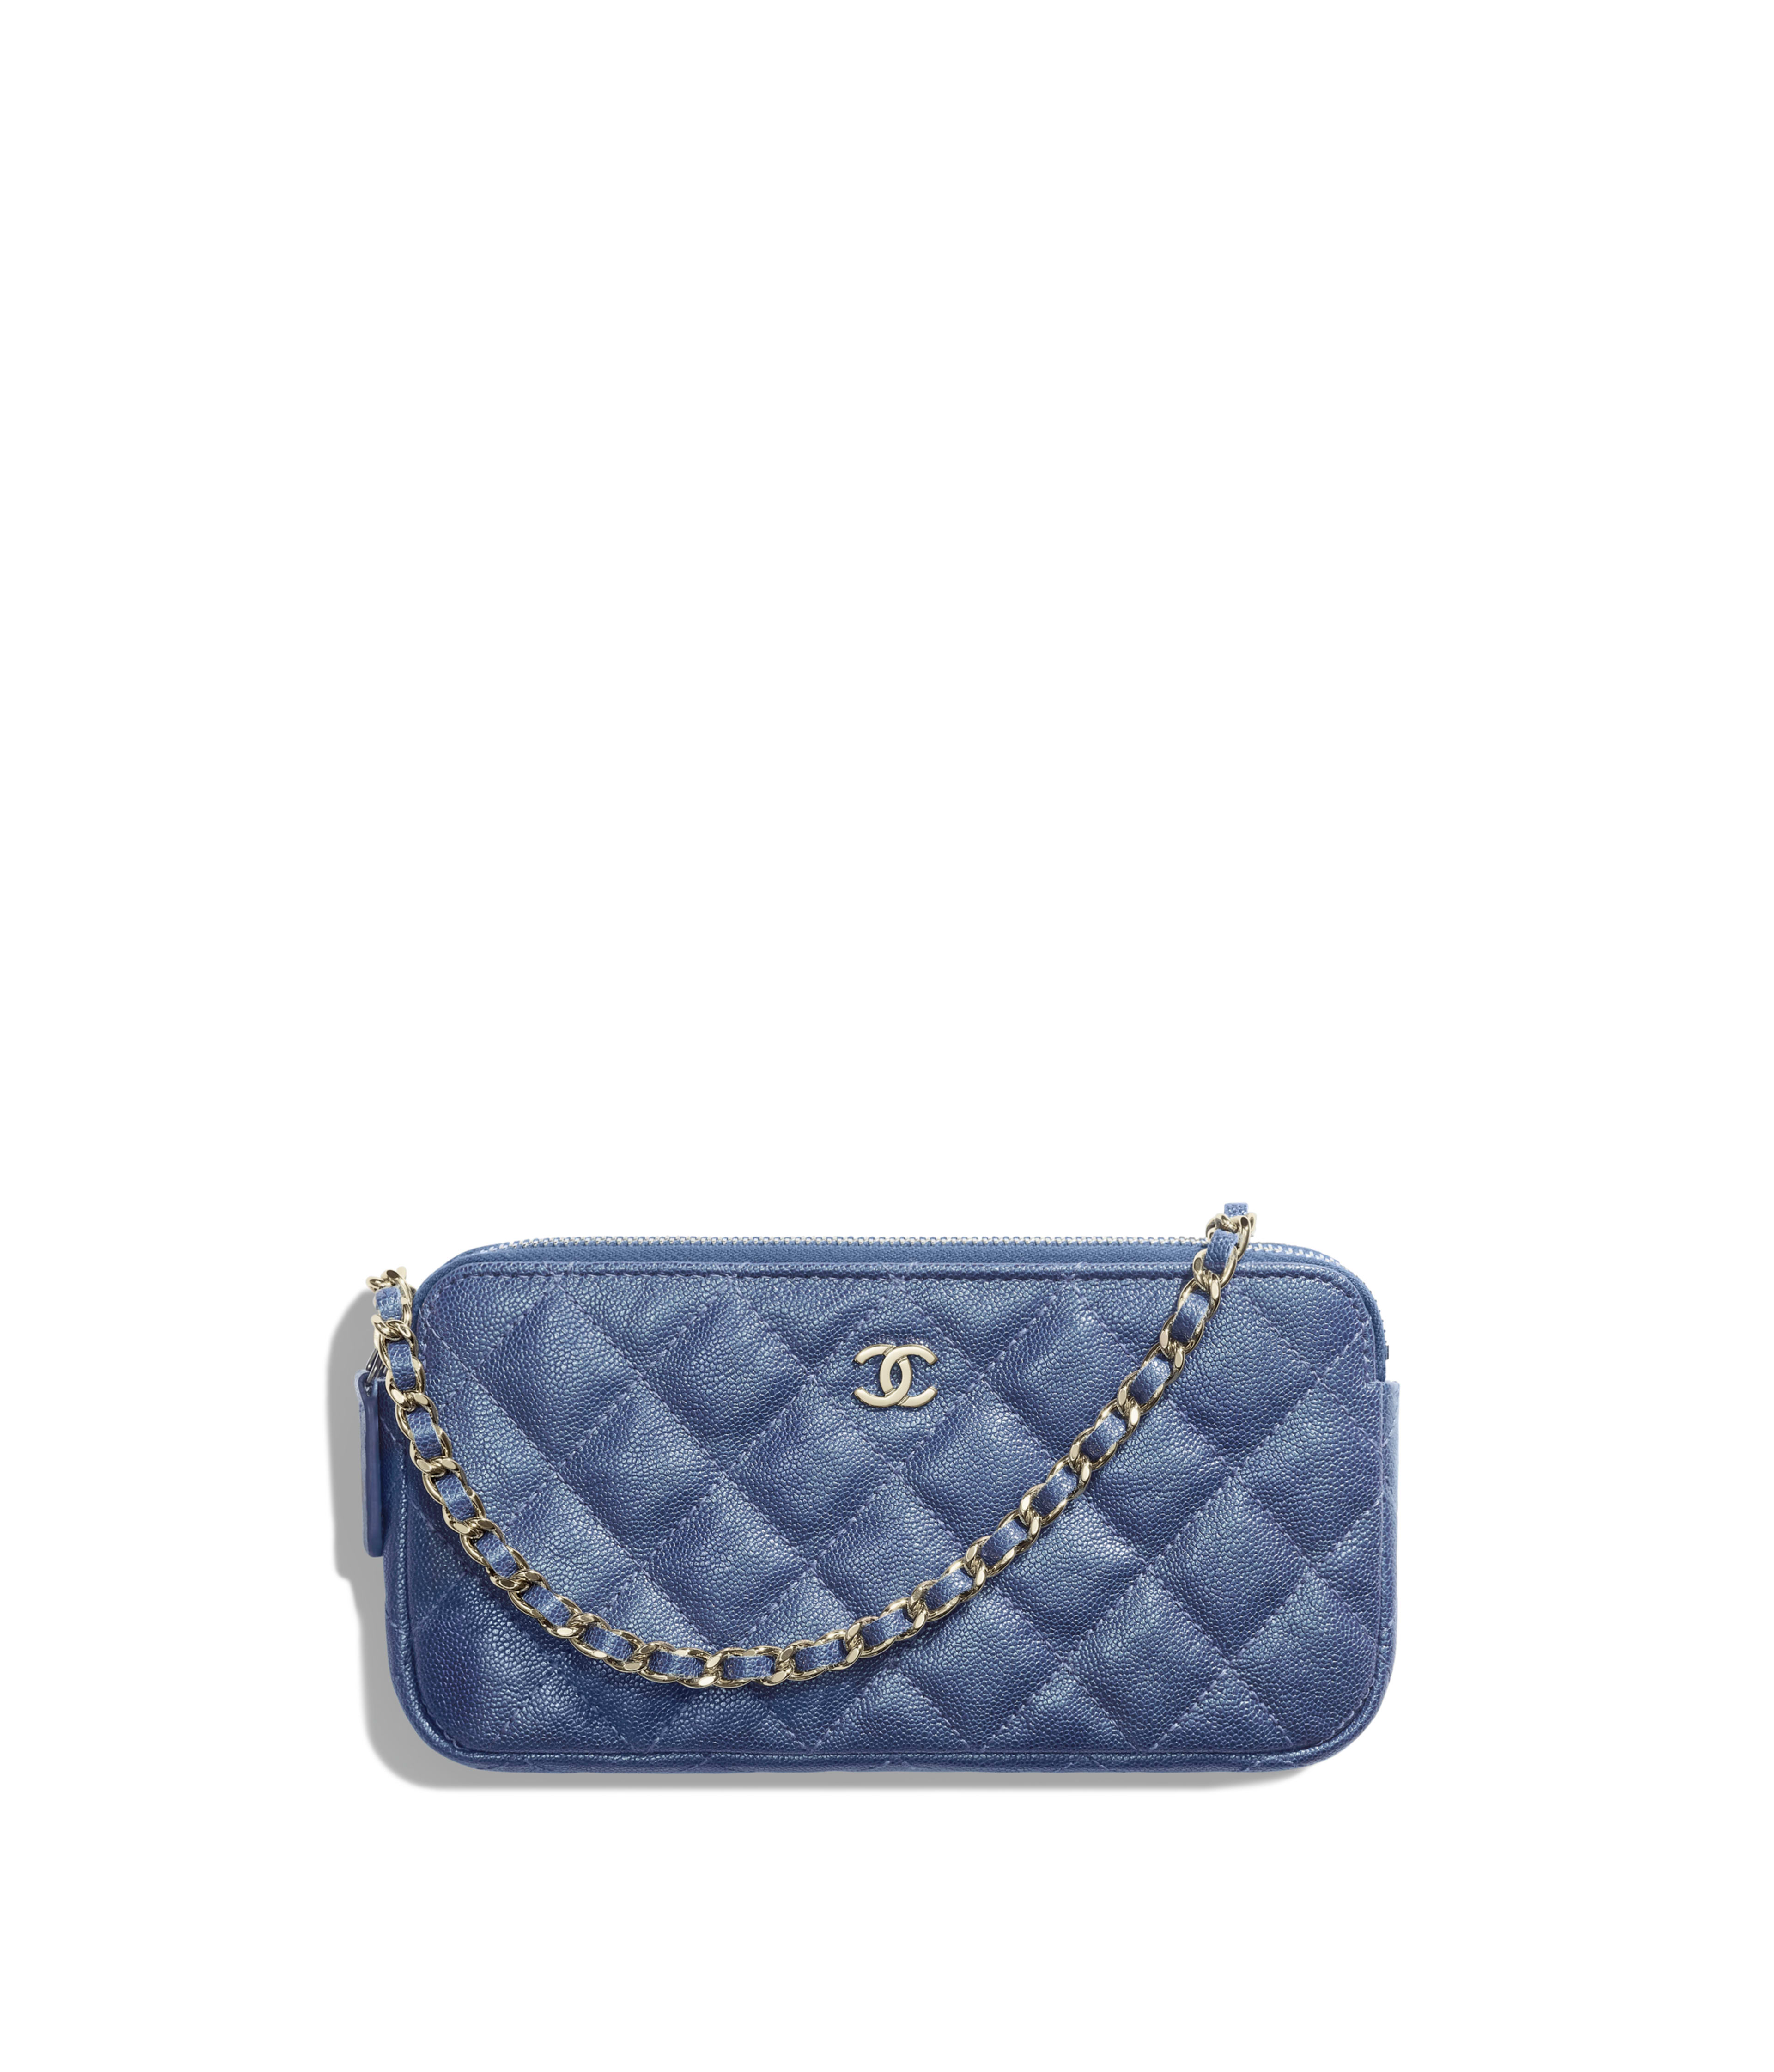 a28b53b95088f Classic Clutch with Chain Iridescent Grained Calfskin   Gold-Tone Metal